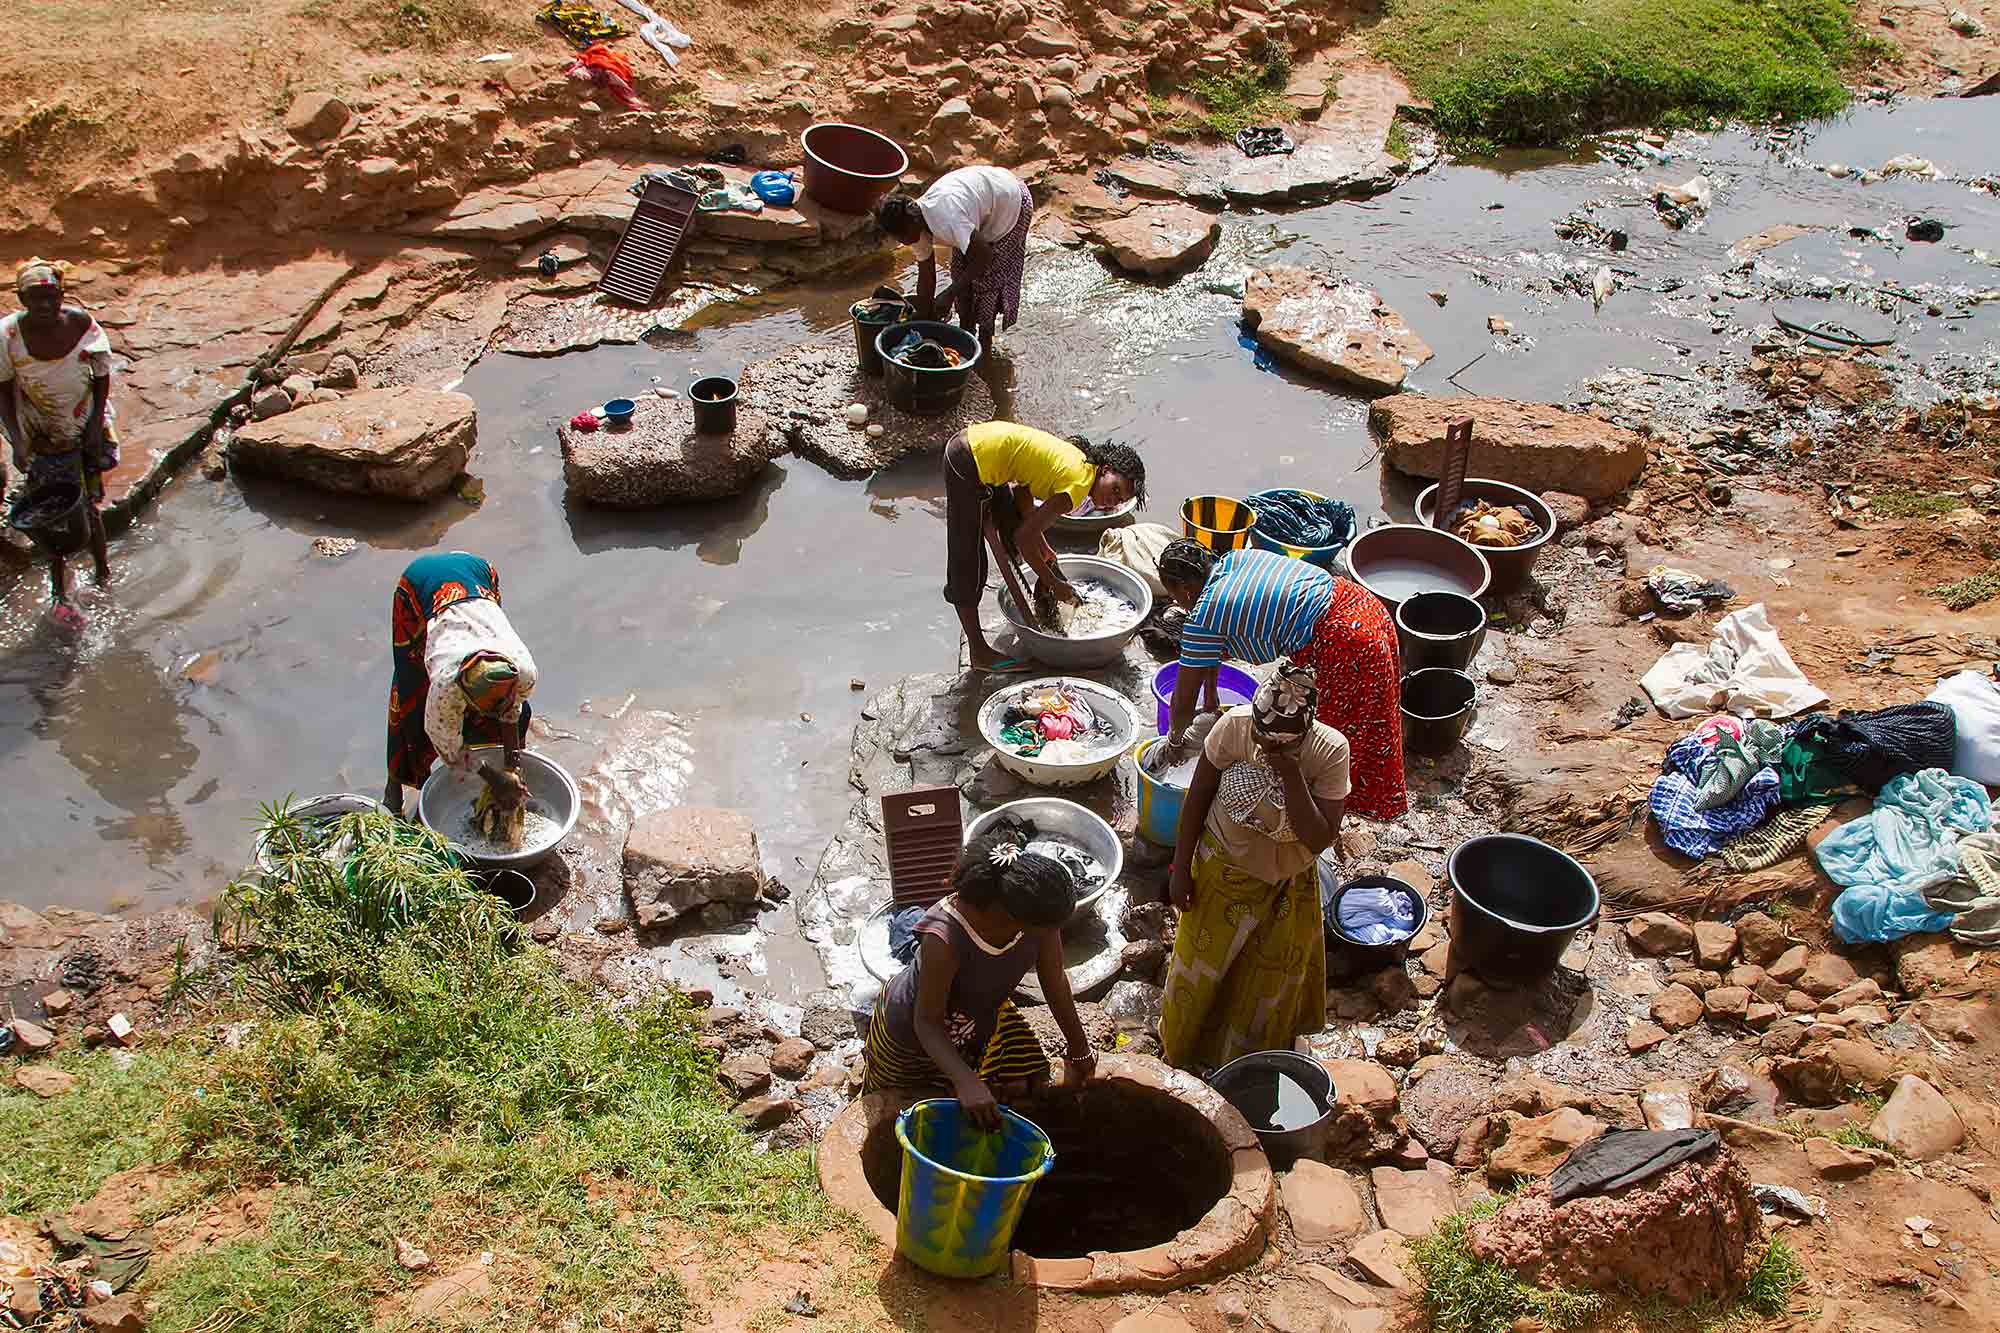 women-washing-river-bobodioulasso-burkina-faso-africa